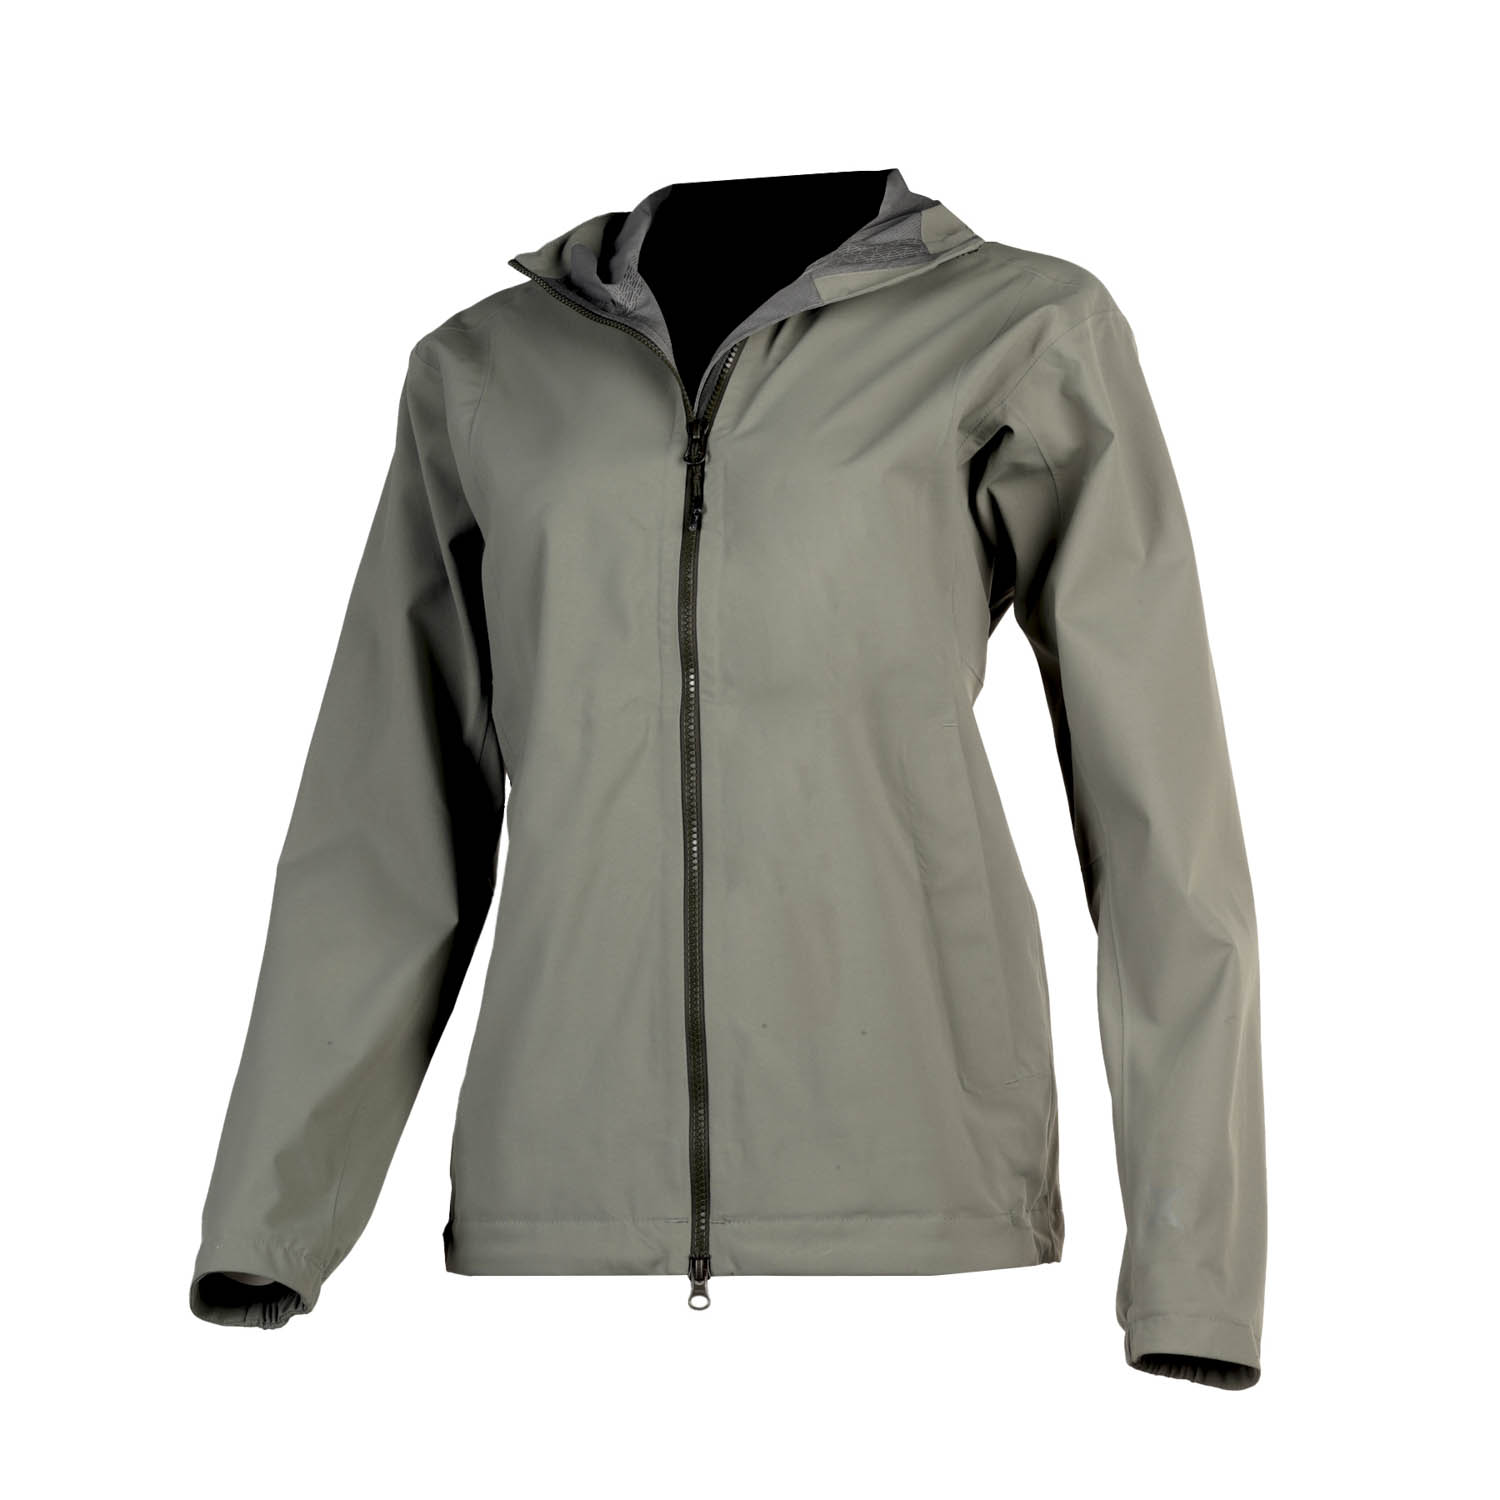 Vertx Women's Fury Hardshell Jacket